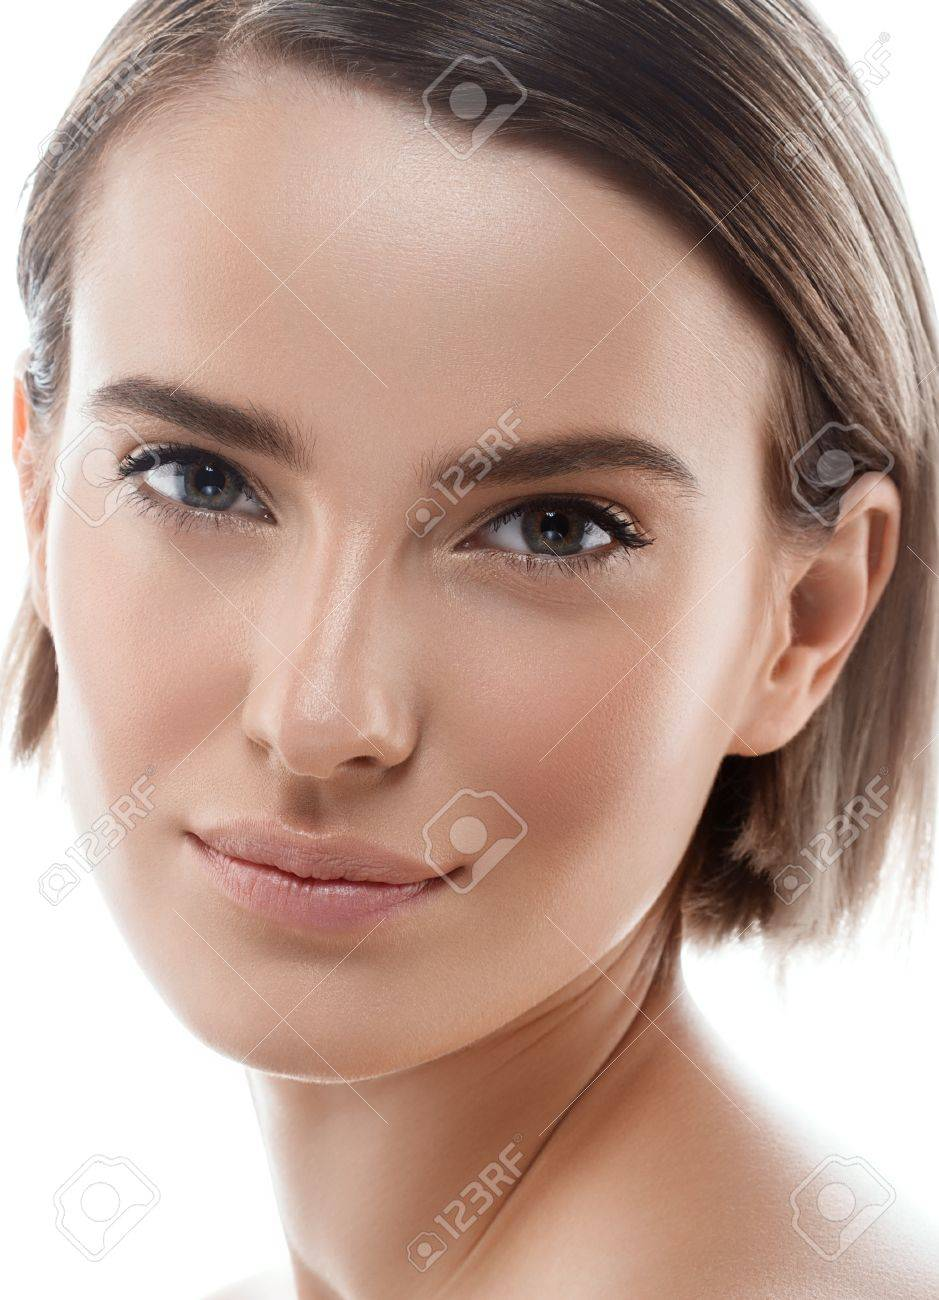 Beauty Woman face Portrait. Beautiful model Girl with Perfect Fresh Clean Skin color lips purple red. Blonde brunette short hair Youth and Skin Care Concept. Isolated on a white background - 63467975